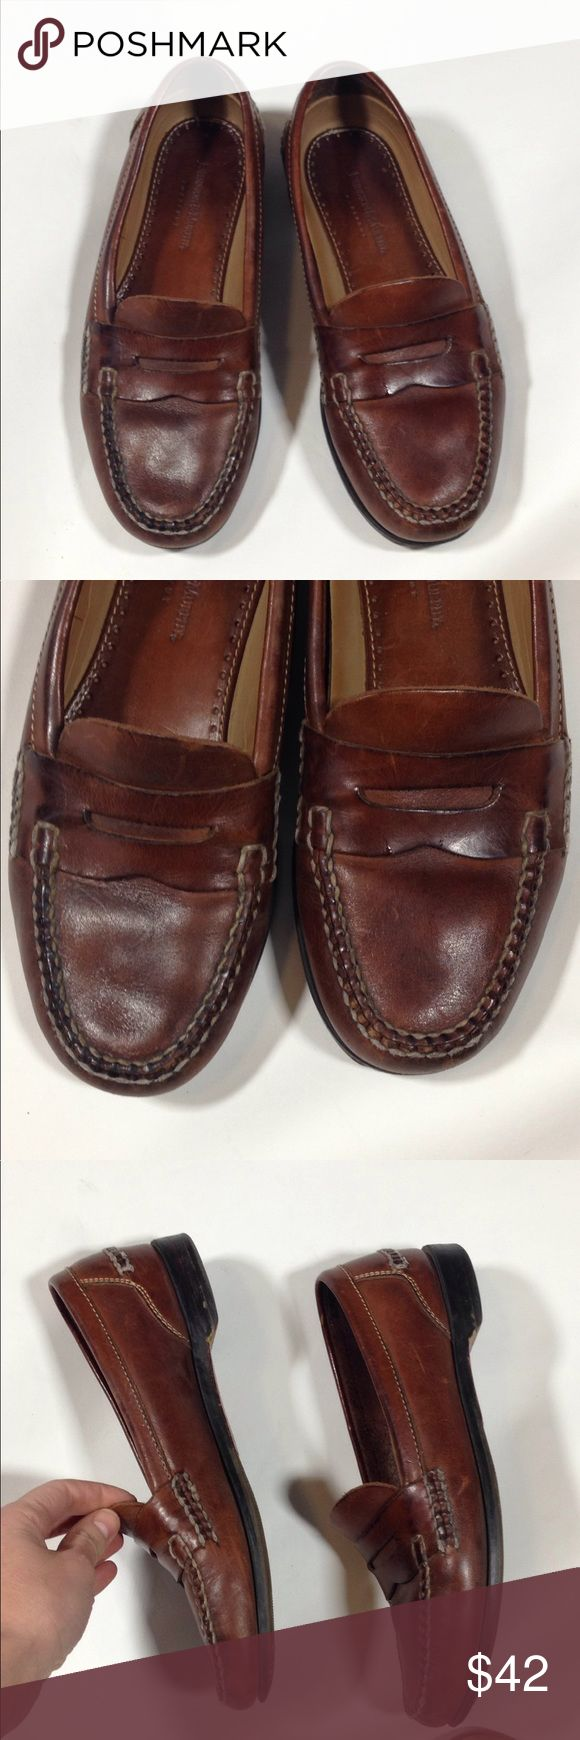 Johnston & Murphy men's brown loafers 8.5 Comfortable leather loafers. Slight wear on the sole under the toe. Good condition otherwise Johnston & Murphy Shoes Loafers & Slip-Ons